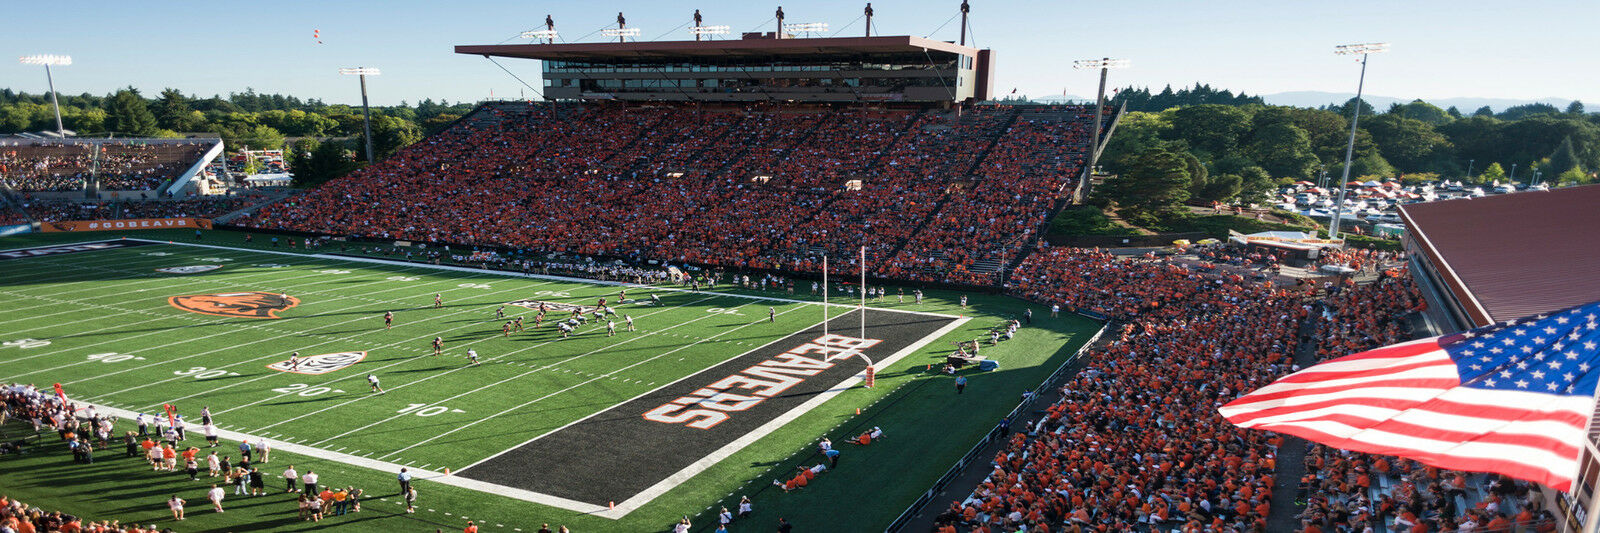 Colorado Buffaloes at Oregon State Beavers Football